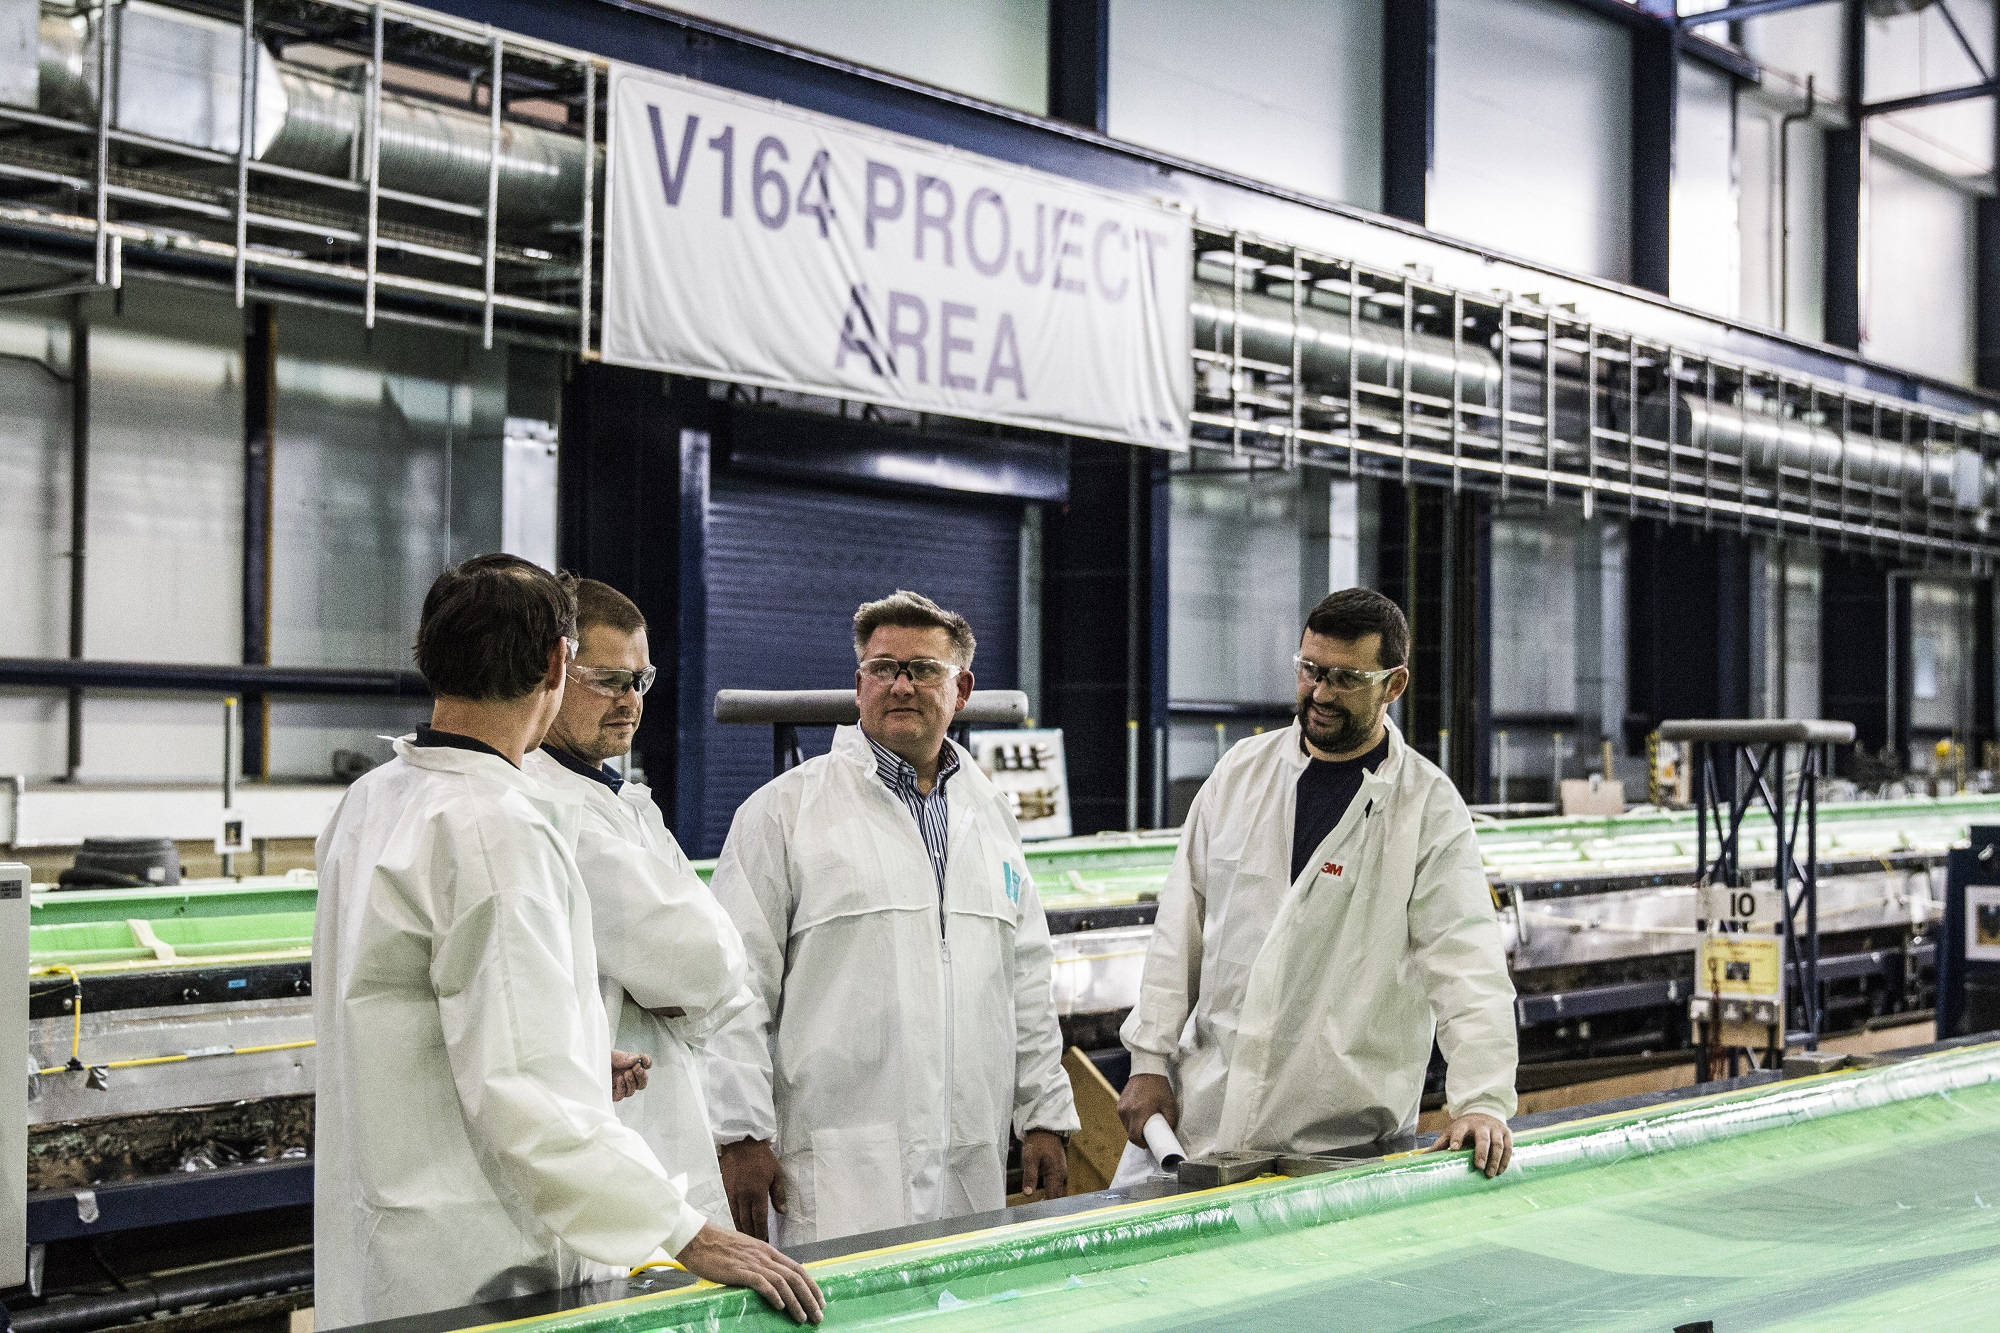 MHI Vestas will hire 200 employees for blade manufacture | Sun & Wind Energy